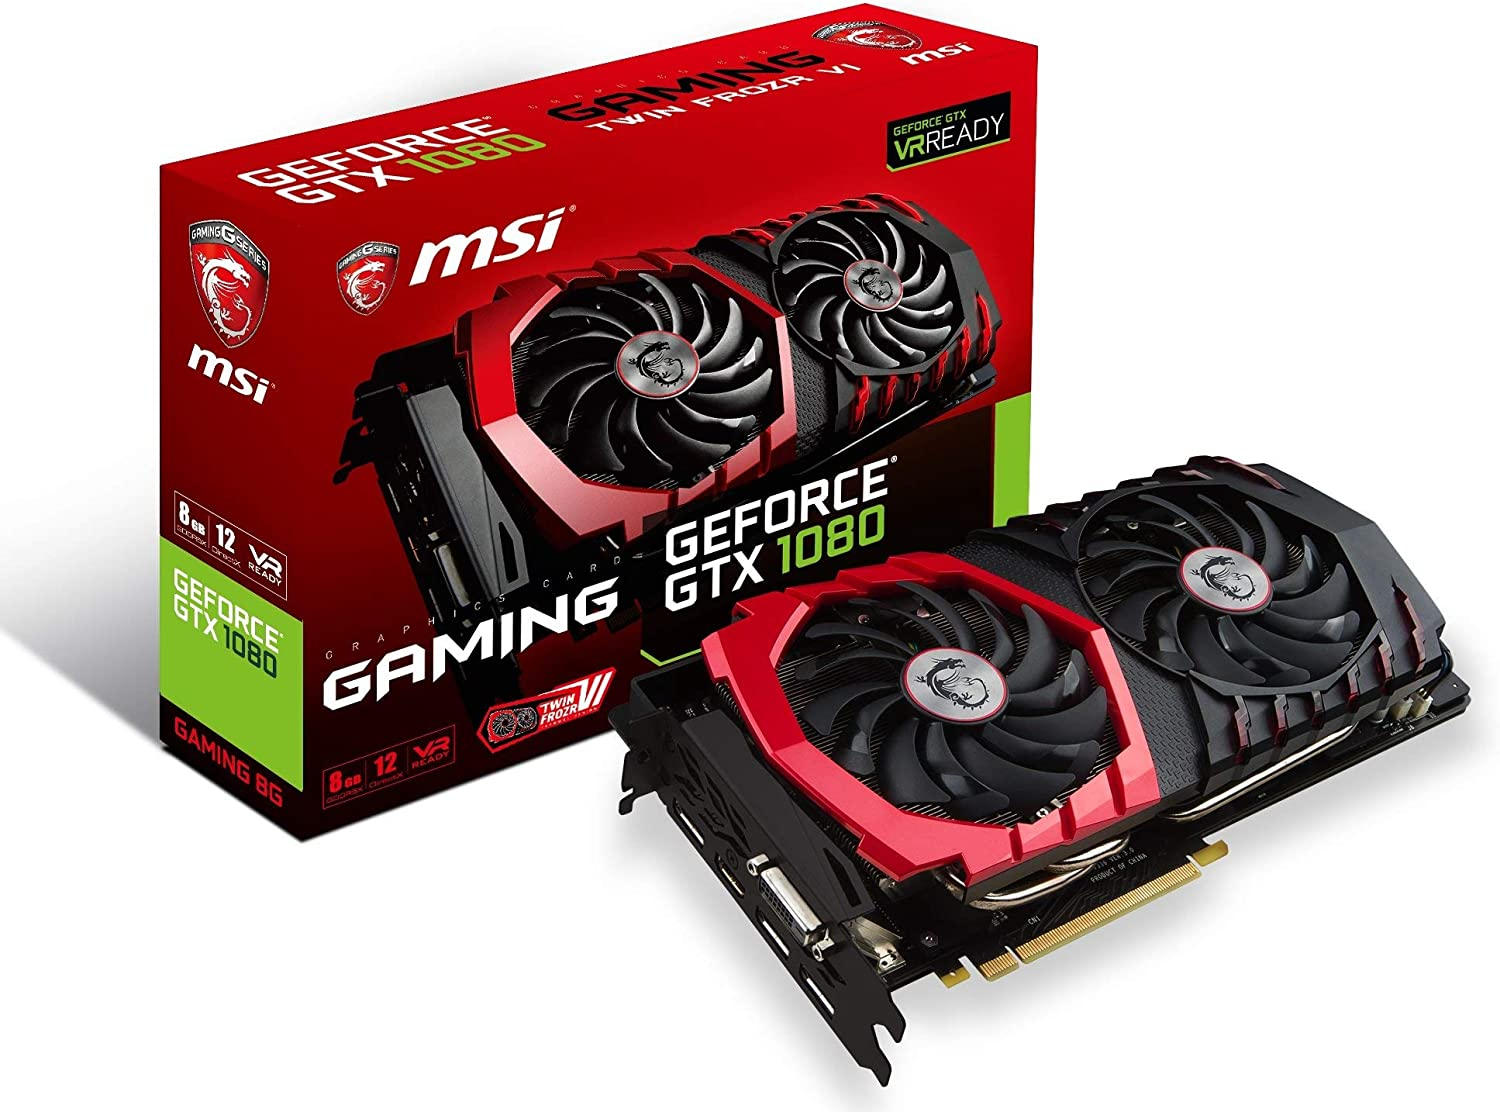 MSI Gaming GeForce GTX 1080 8GB GDDR5X SLI DirectX 12 VR Ready Graphics Card (GTX 1080 GAMING 8G) (Renewed)